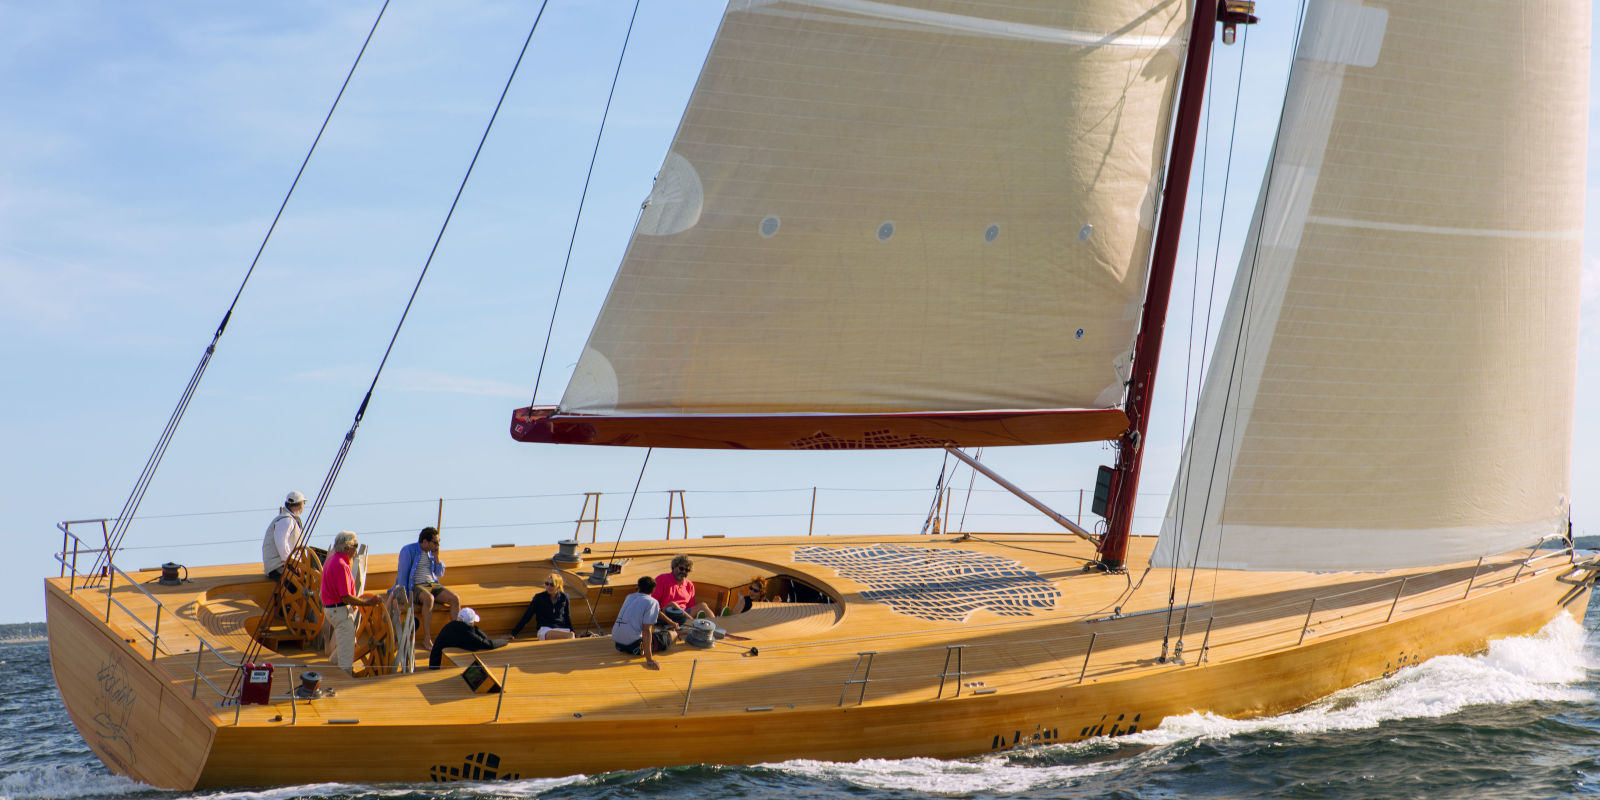 Frank Gehry's First-Ever Yacht